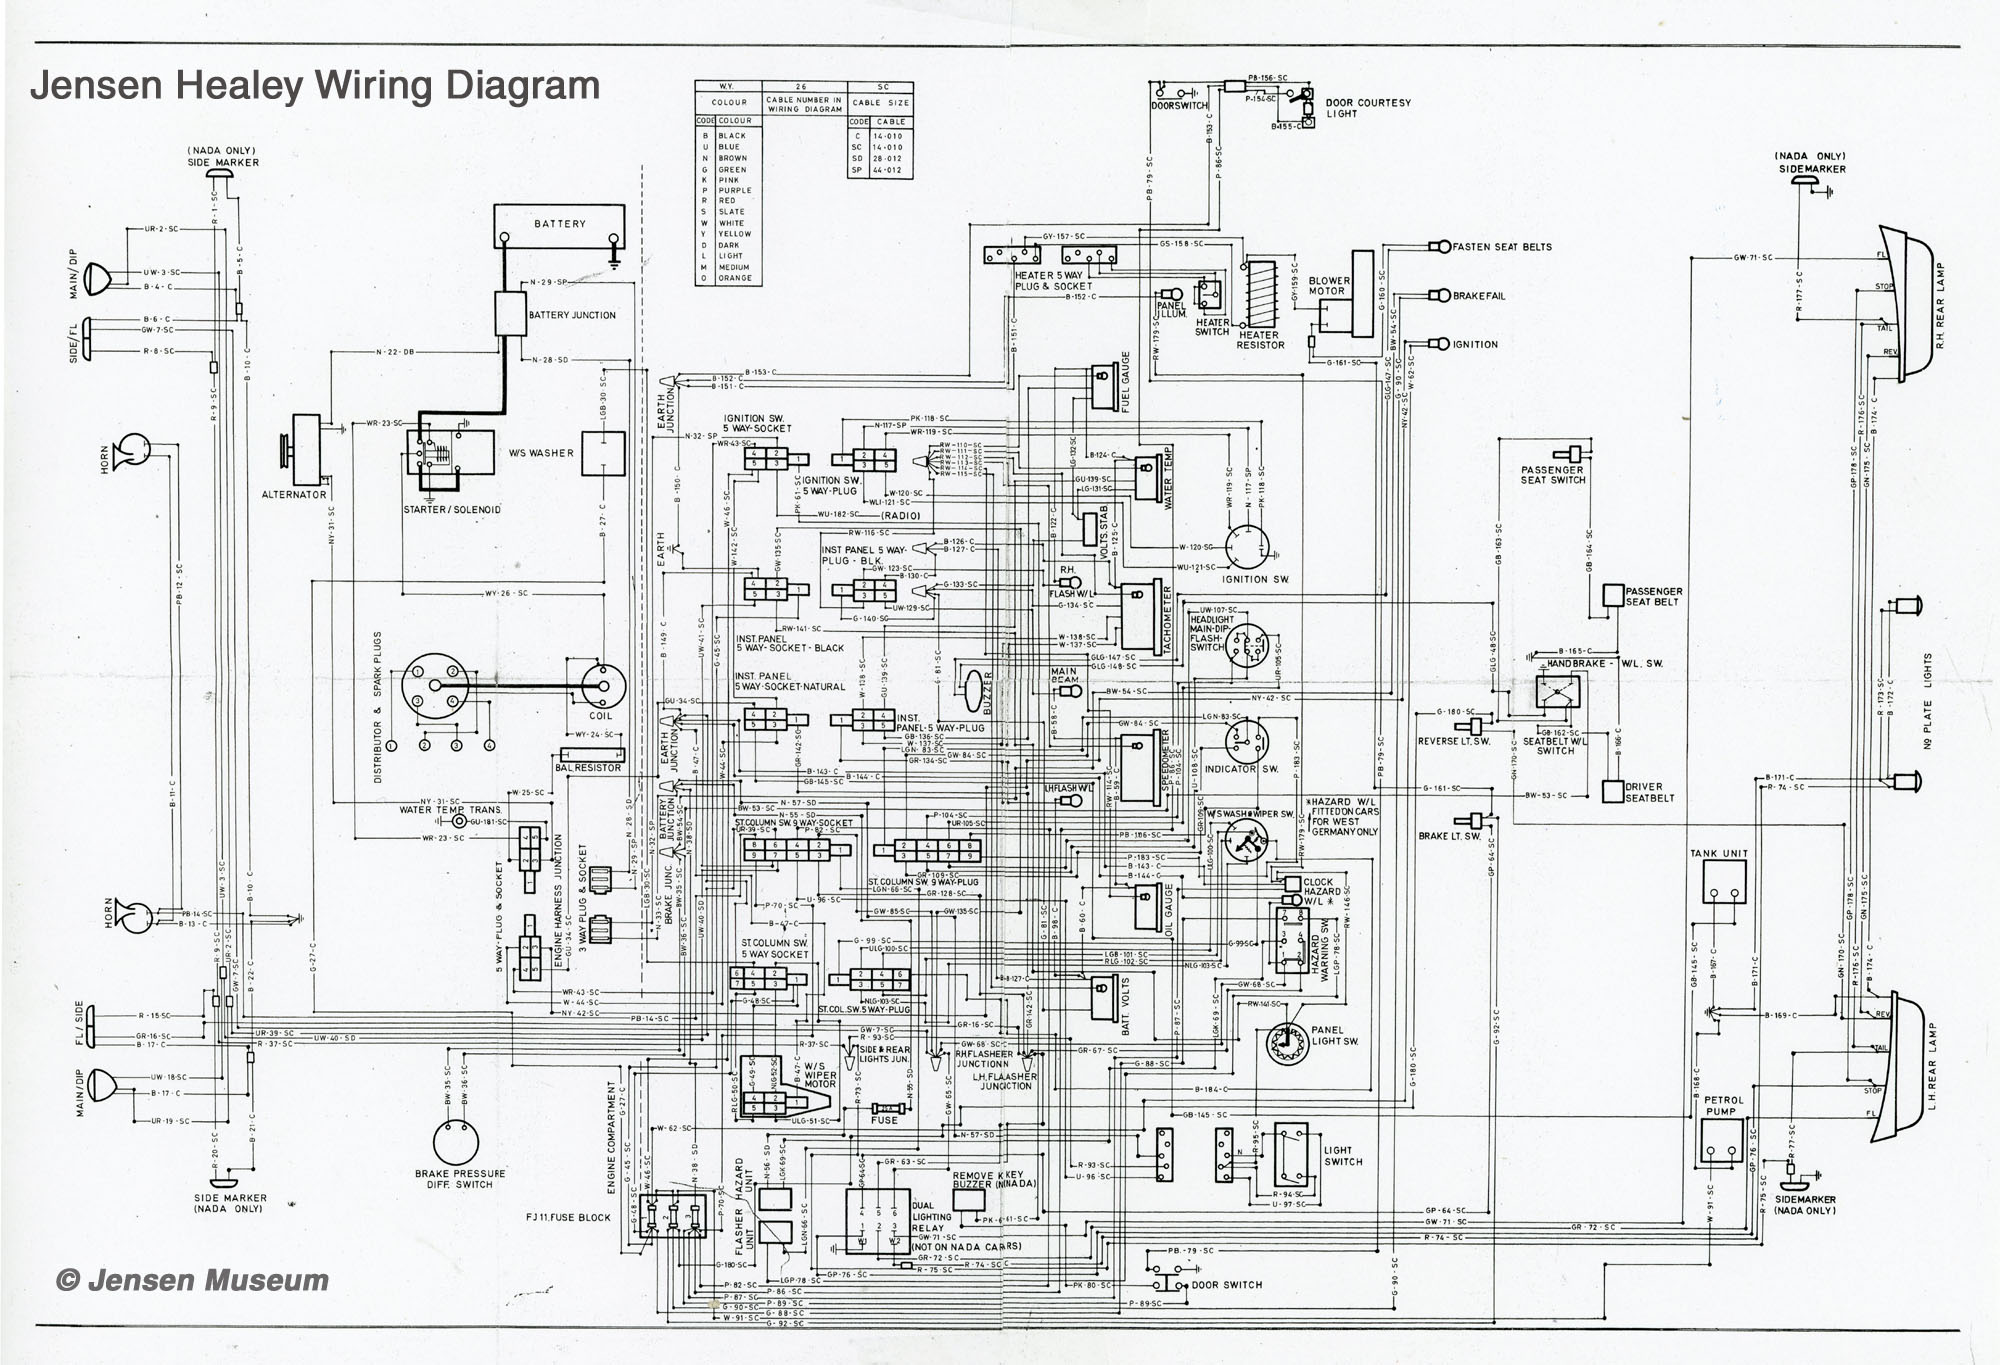 Jensen Healey Wiring Diagram